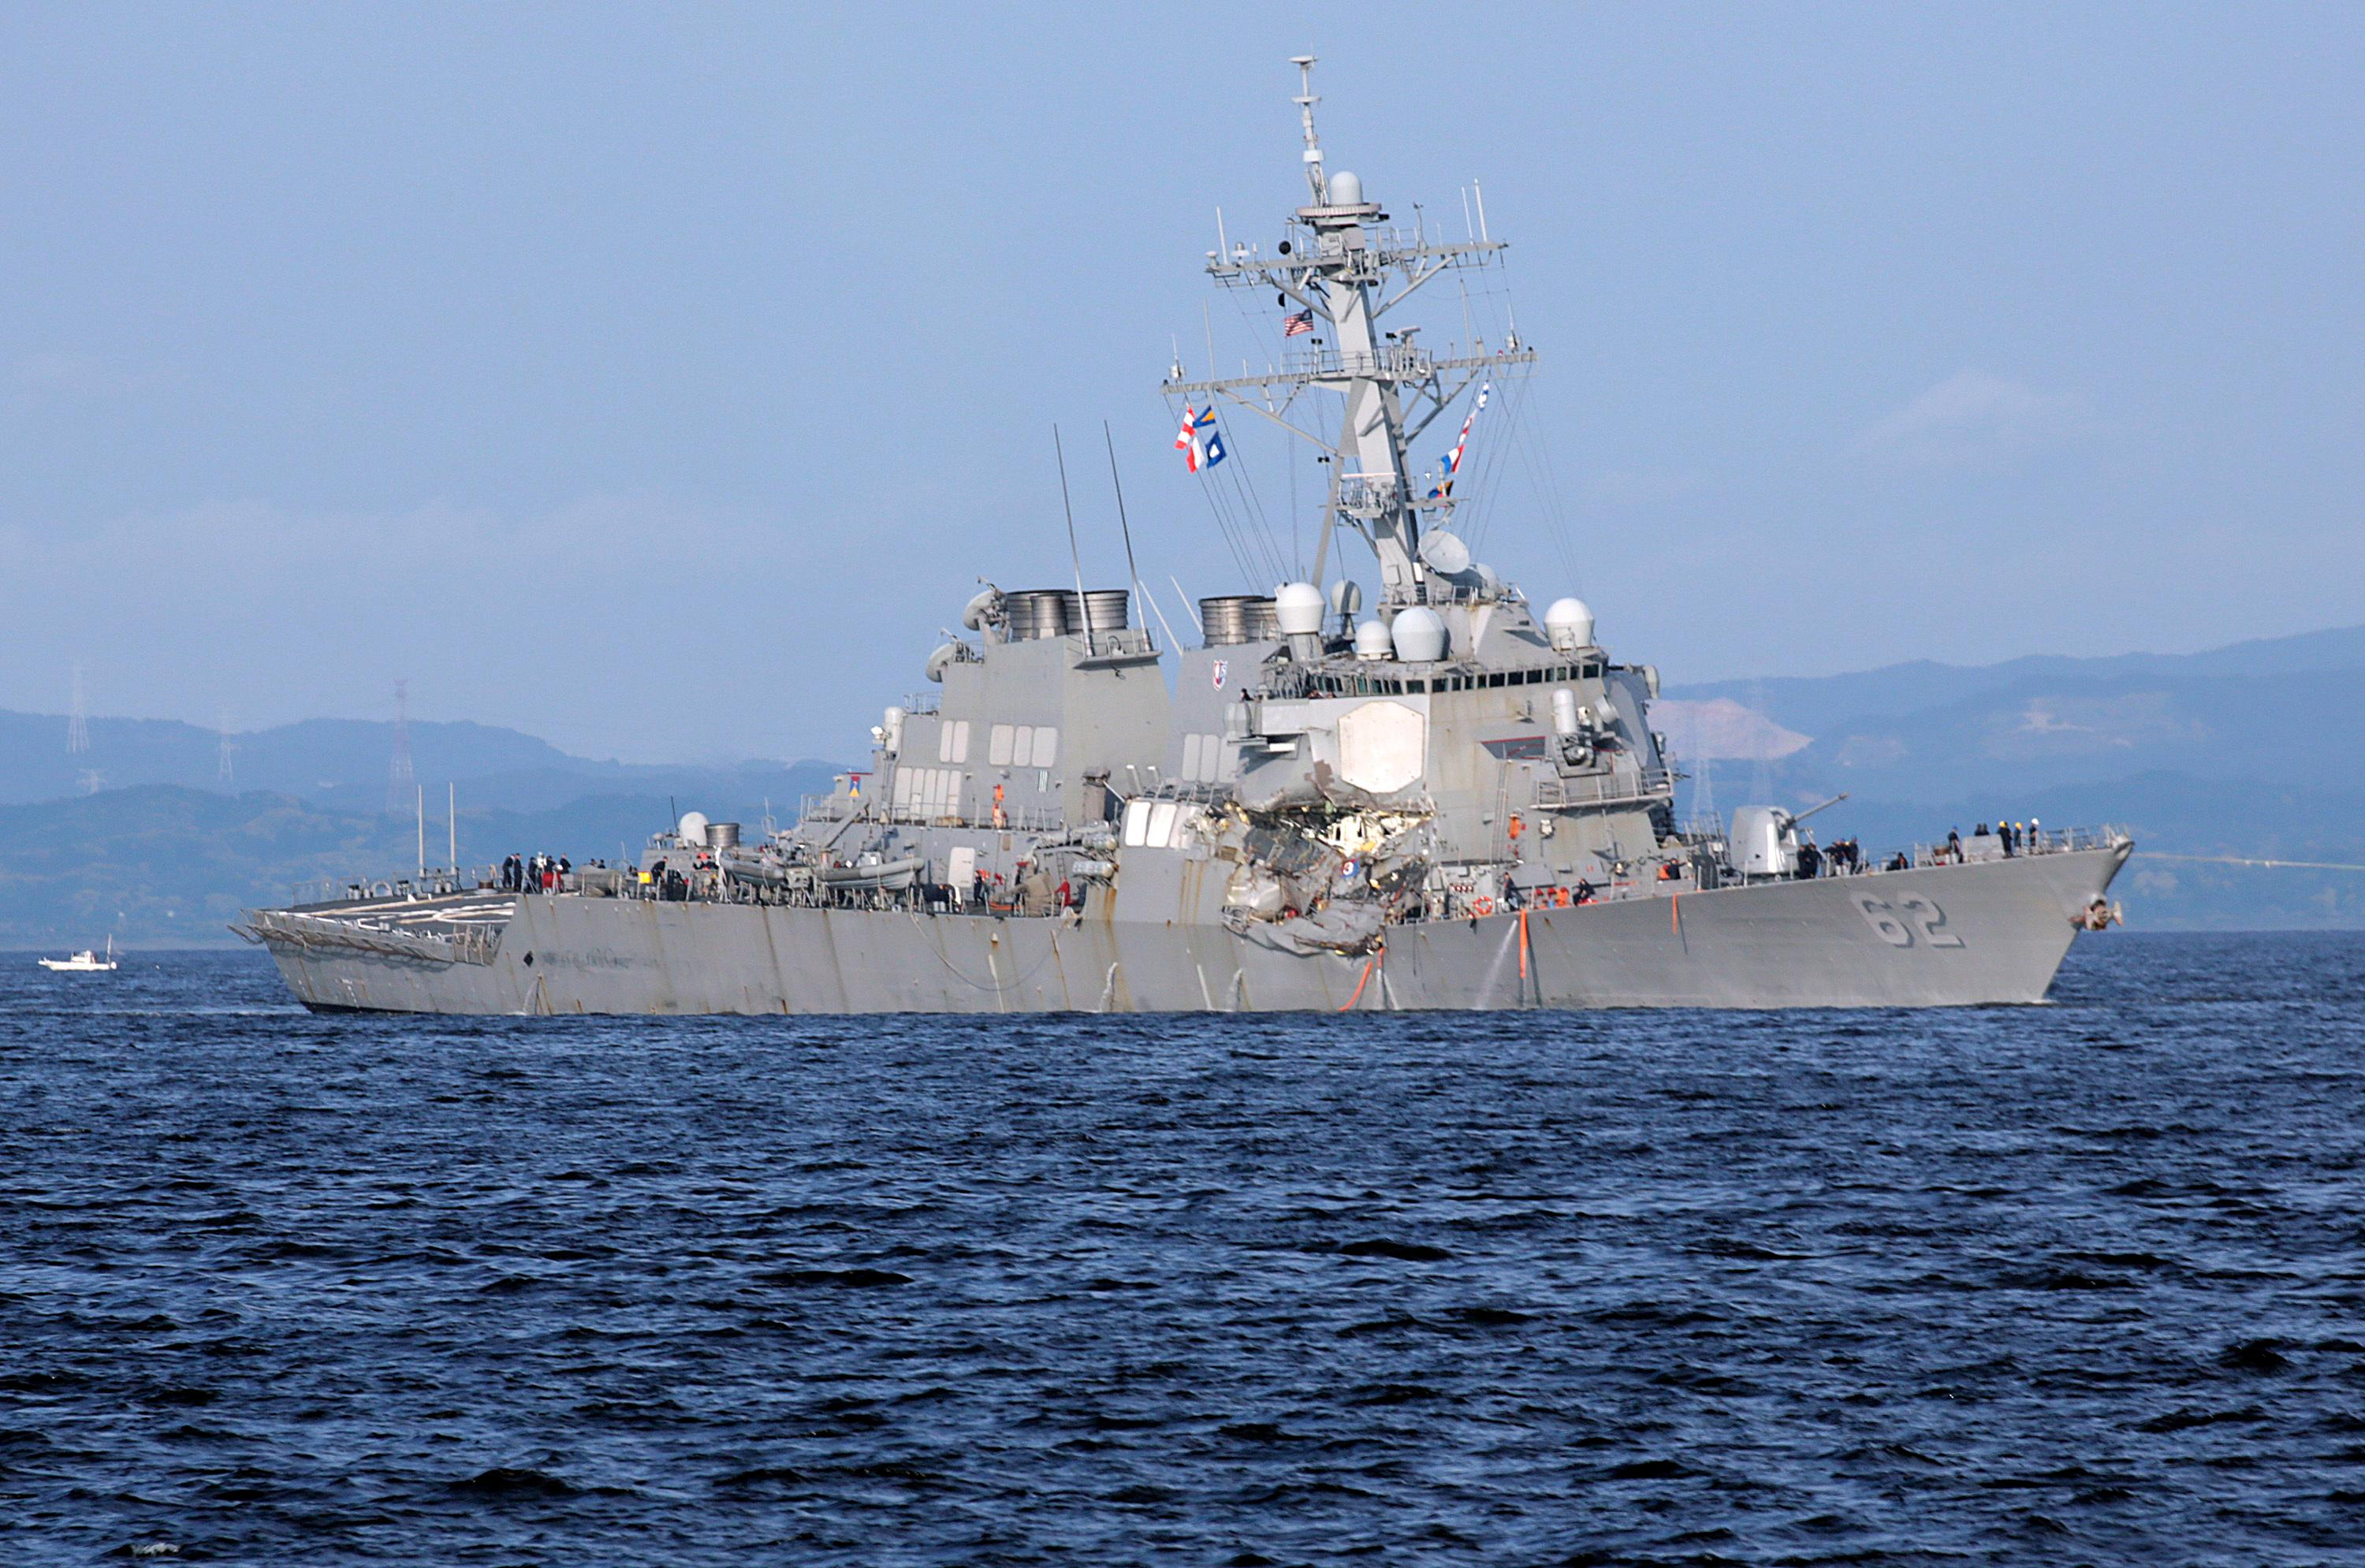 The damaged USS Fitzgerald is seen near the U.S. Naval base in Yokosuka, southwest of Tokyo, after the U.S. destroyer collided with the Philippine-registered container ship ACX Crystal in the waters off the Izu Peninsula Saturday, June 17, 2017. Crew members from the destroyer USS Dewey were helping stabilize the damaged USS Fitzgerald after its collision off the coast of Japan before dawn Saturday, leaving seven sailors missing and at least three injured. (AP Photo/Eugene Hoshiko)